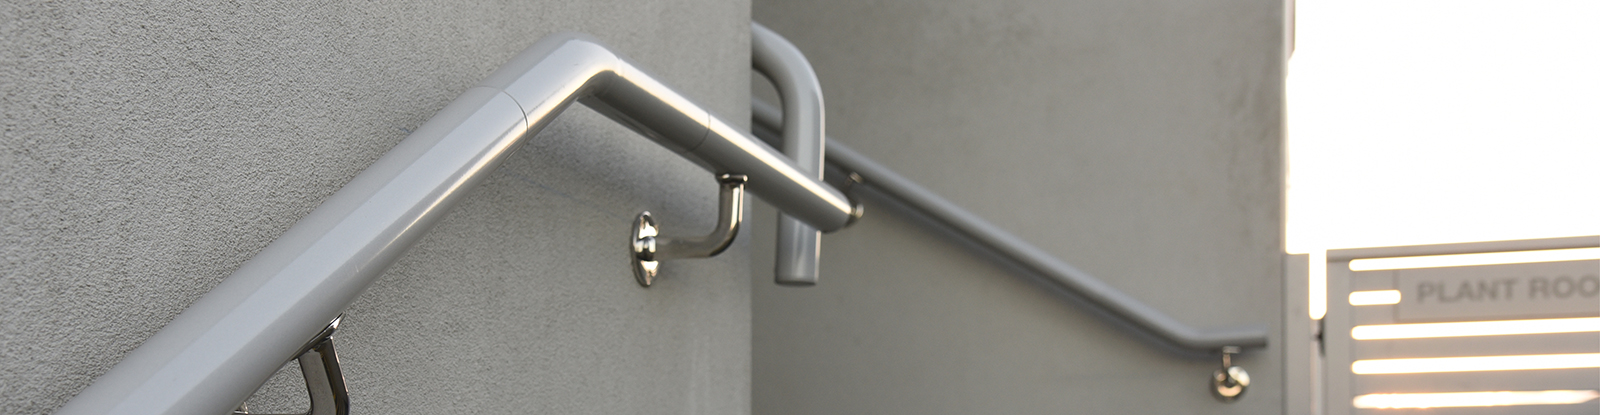 Brushed aluminium handrail fixed to concrete wall